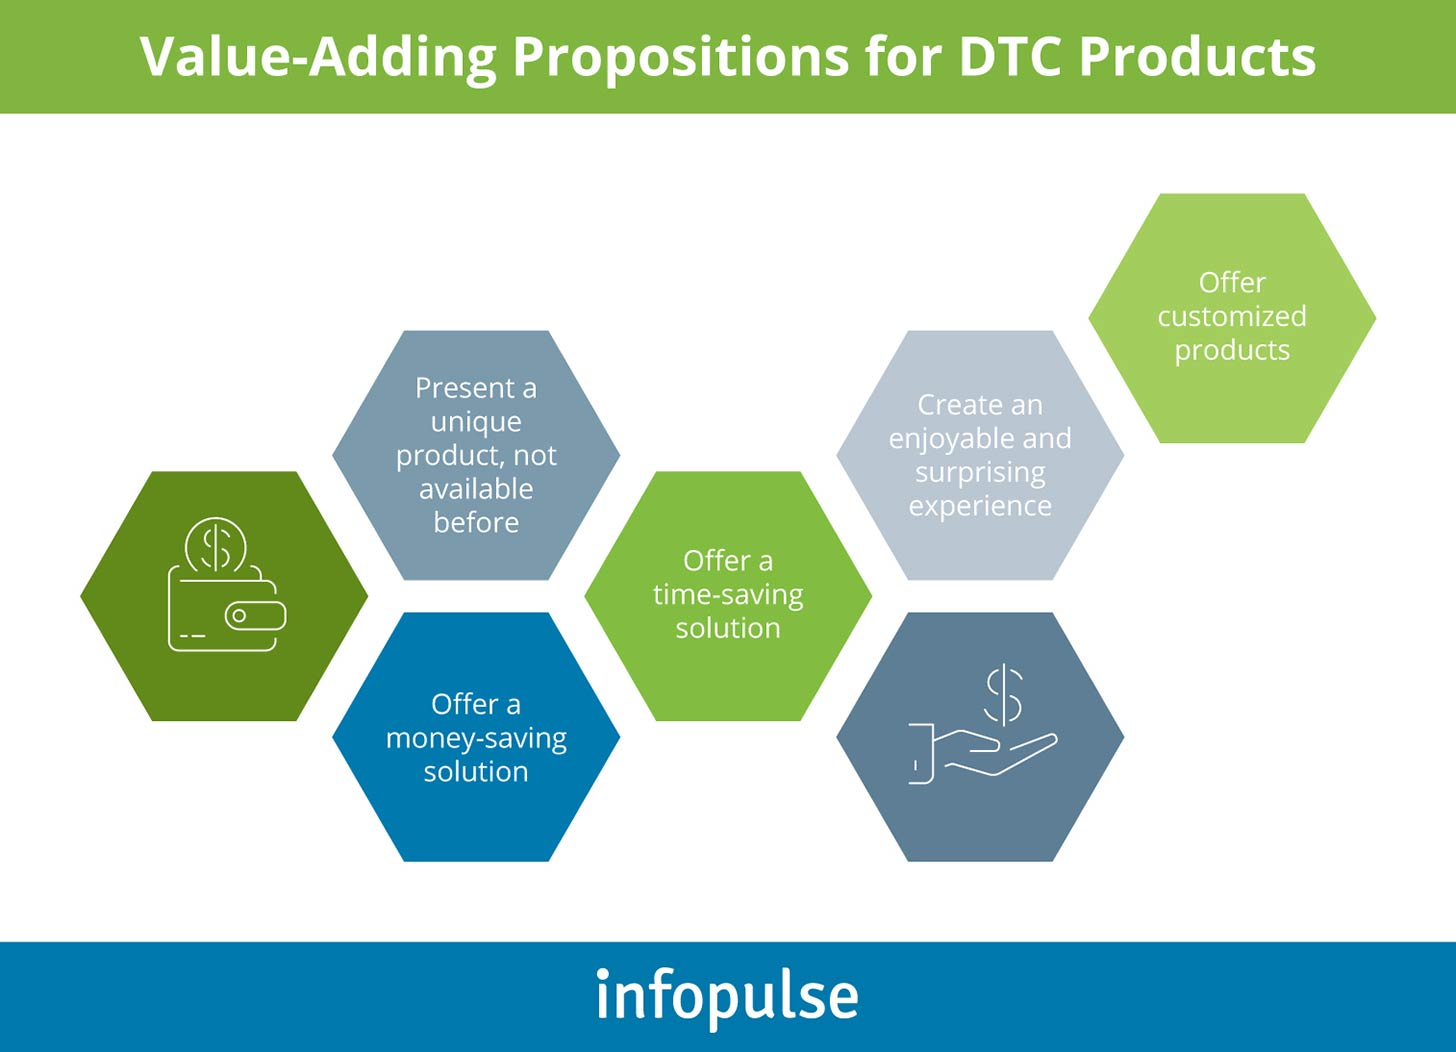 Value-Adding Propositions for DTC Products - Infopulse - 1